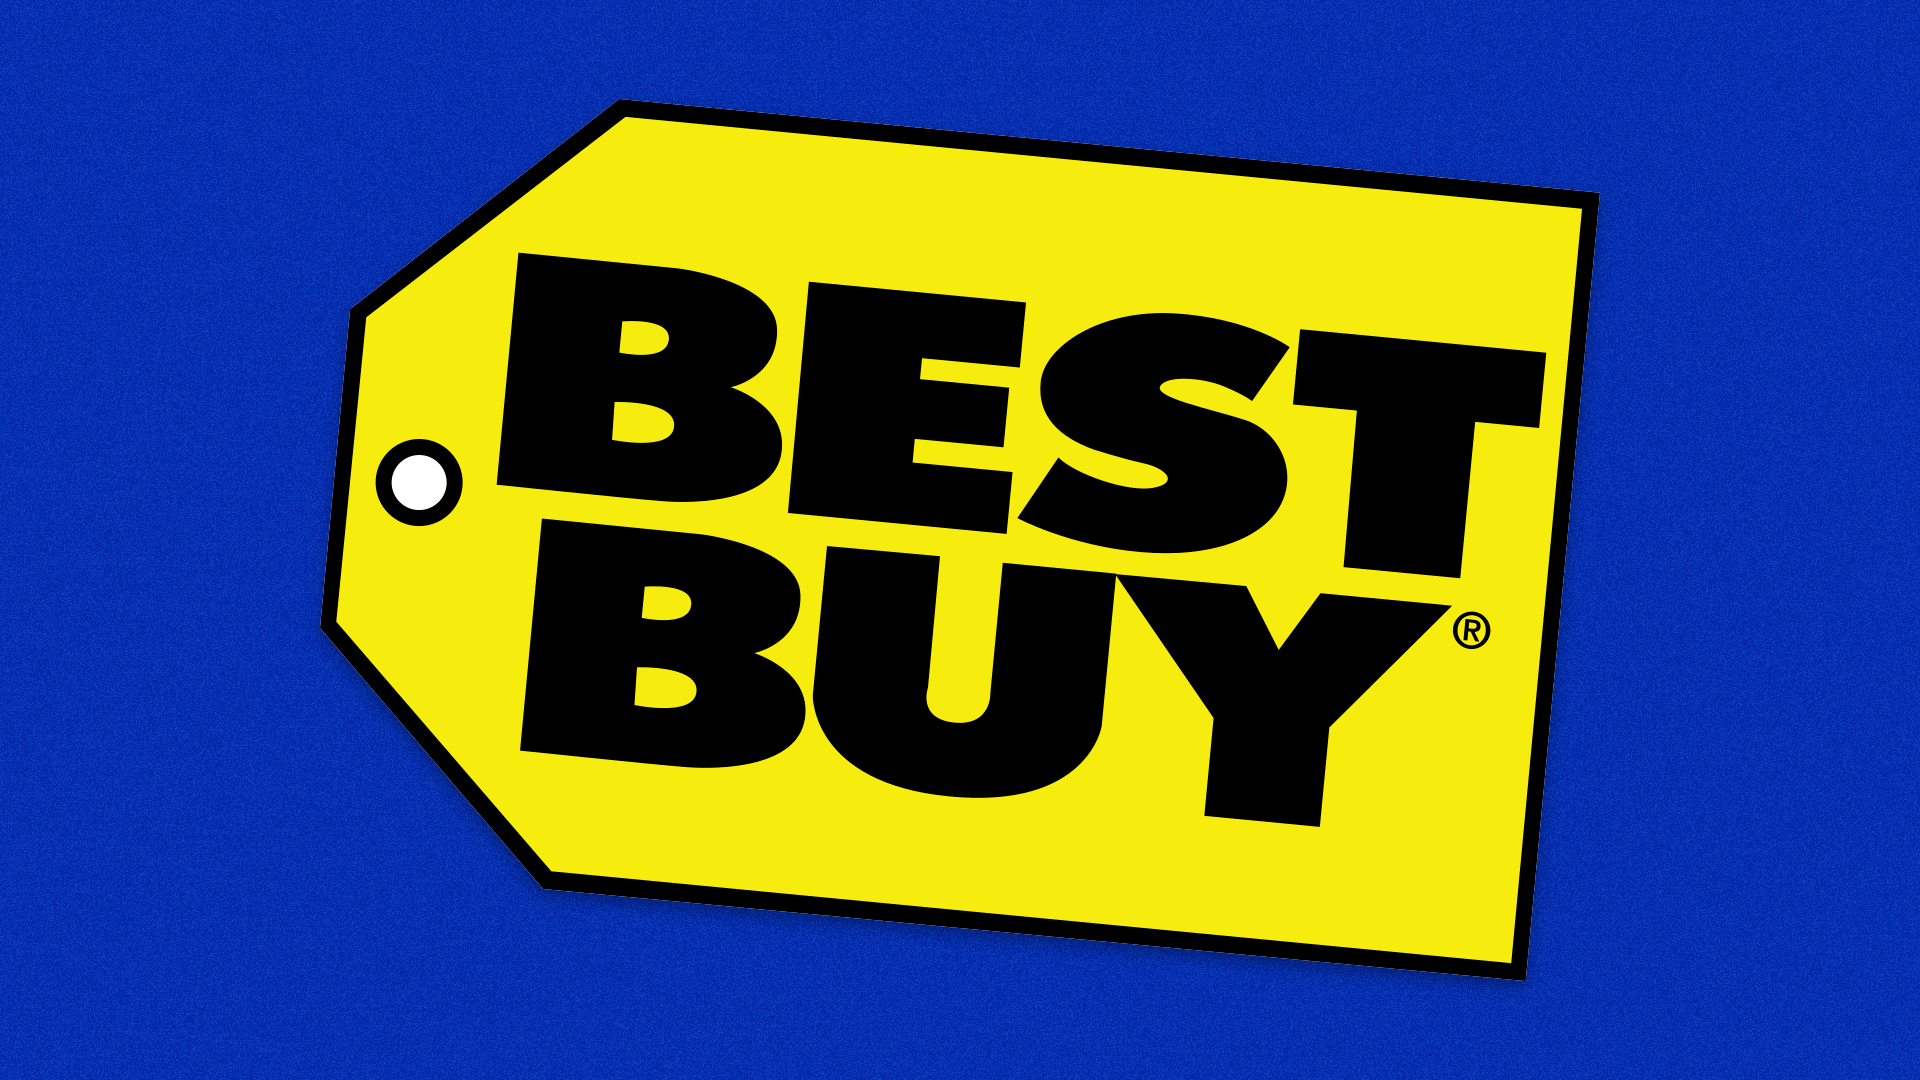 The Best Buy logo on a blue background.